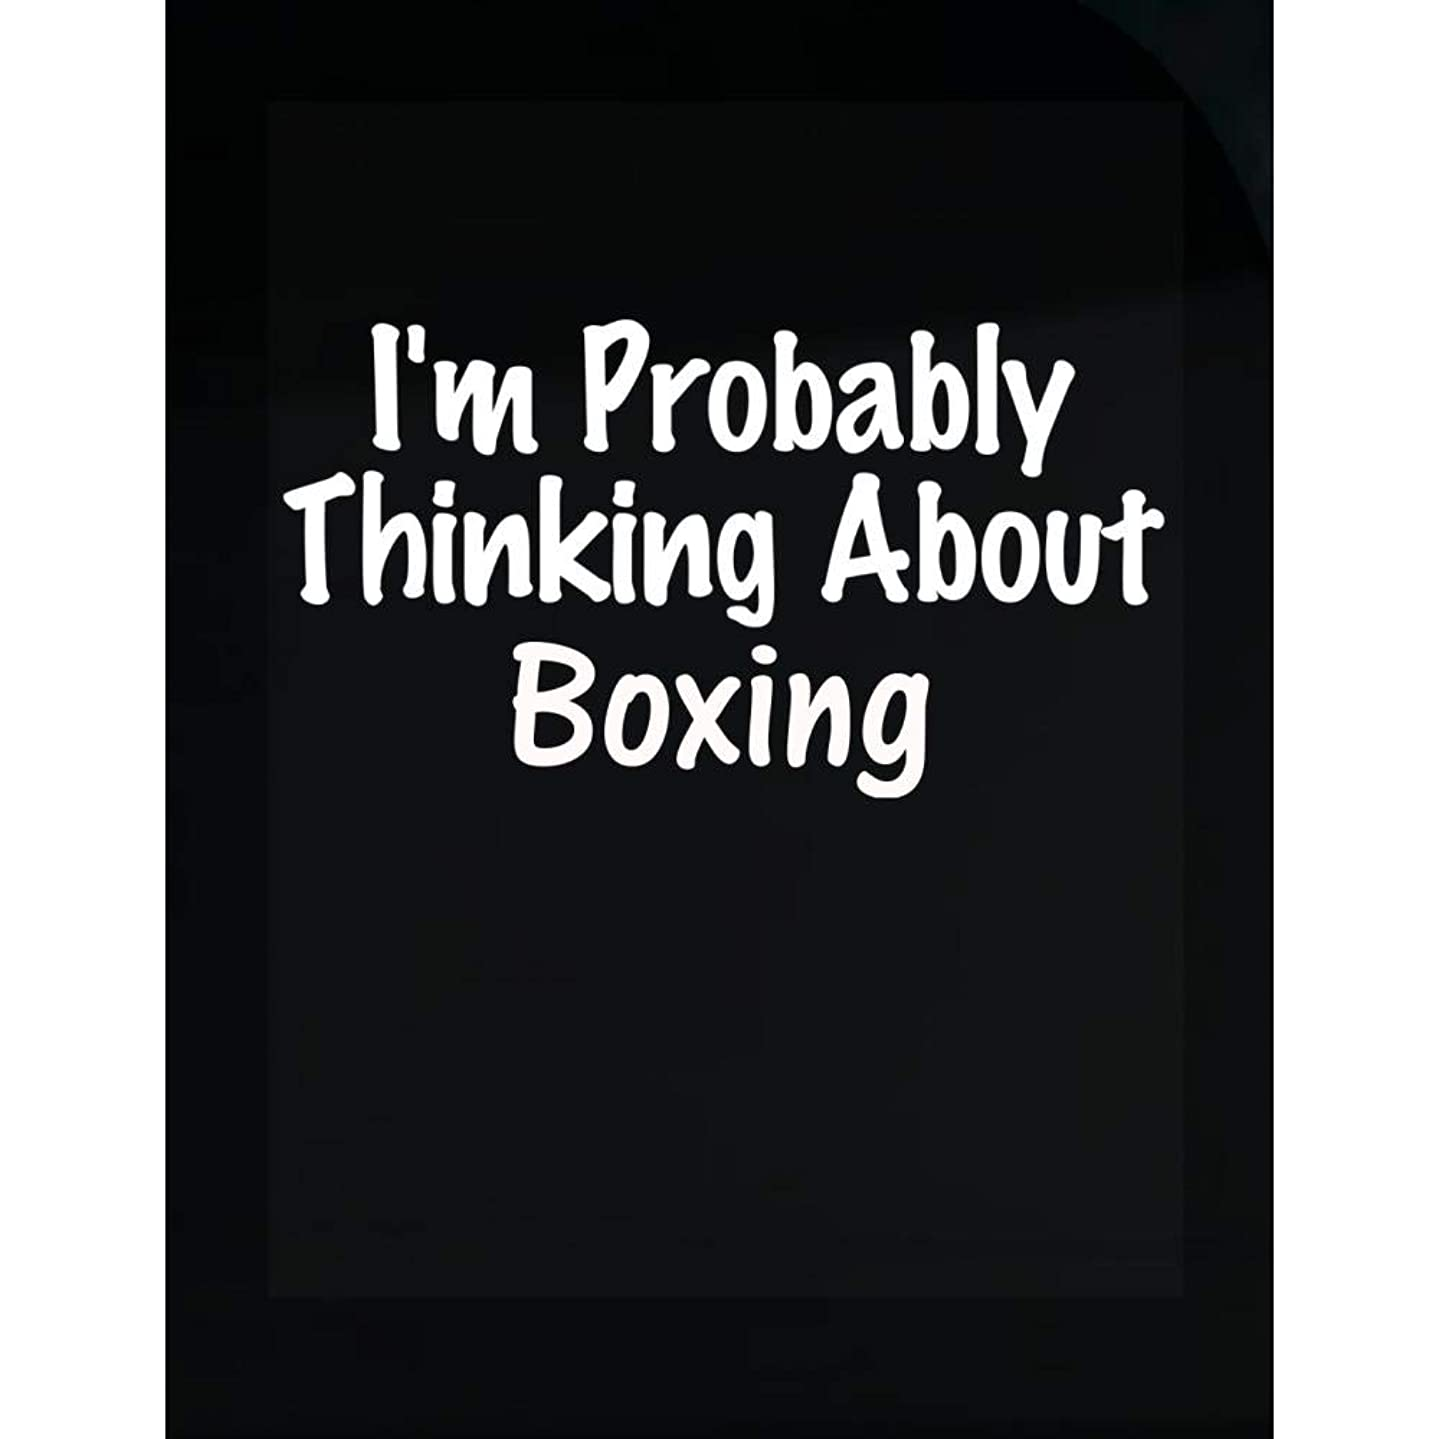 Funny Boxing Design - Probably Thinking About - Sports Gift - Gloves Theme - Ring - Transparent Sticker